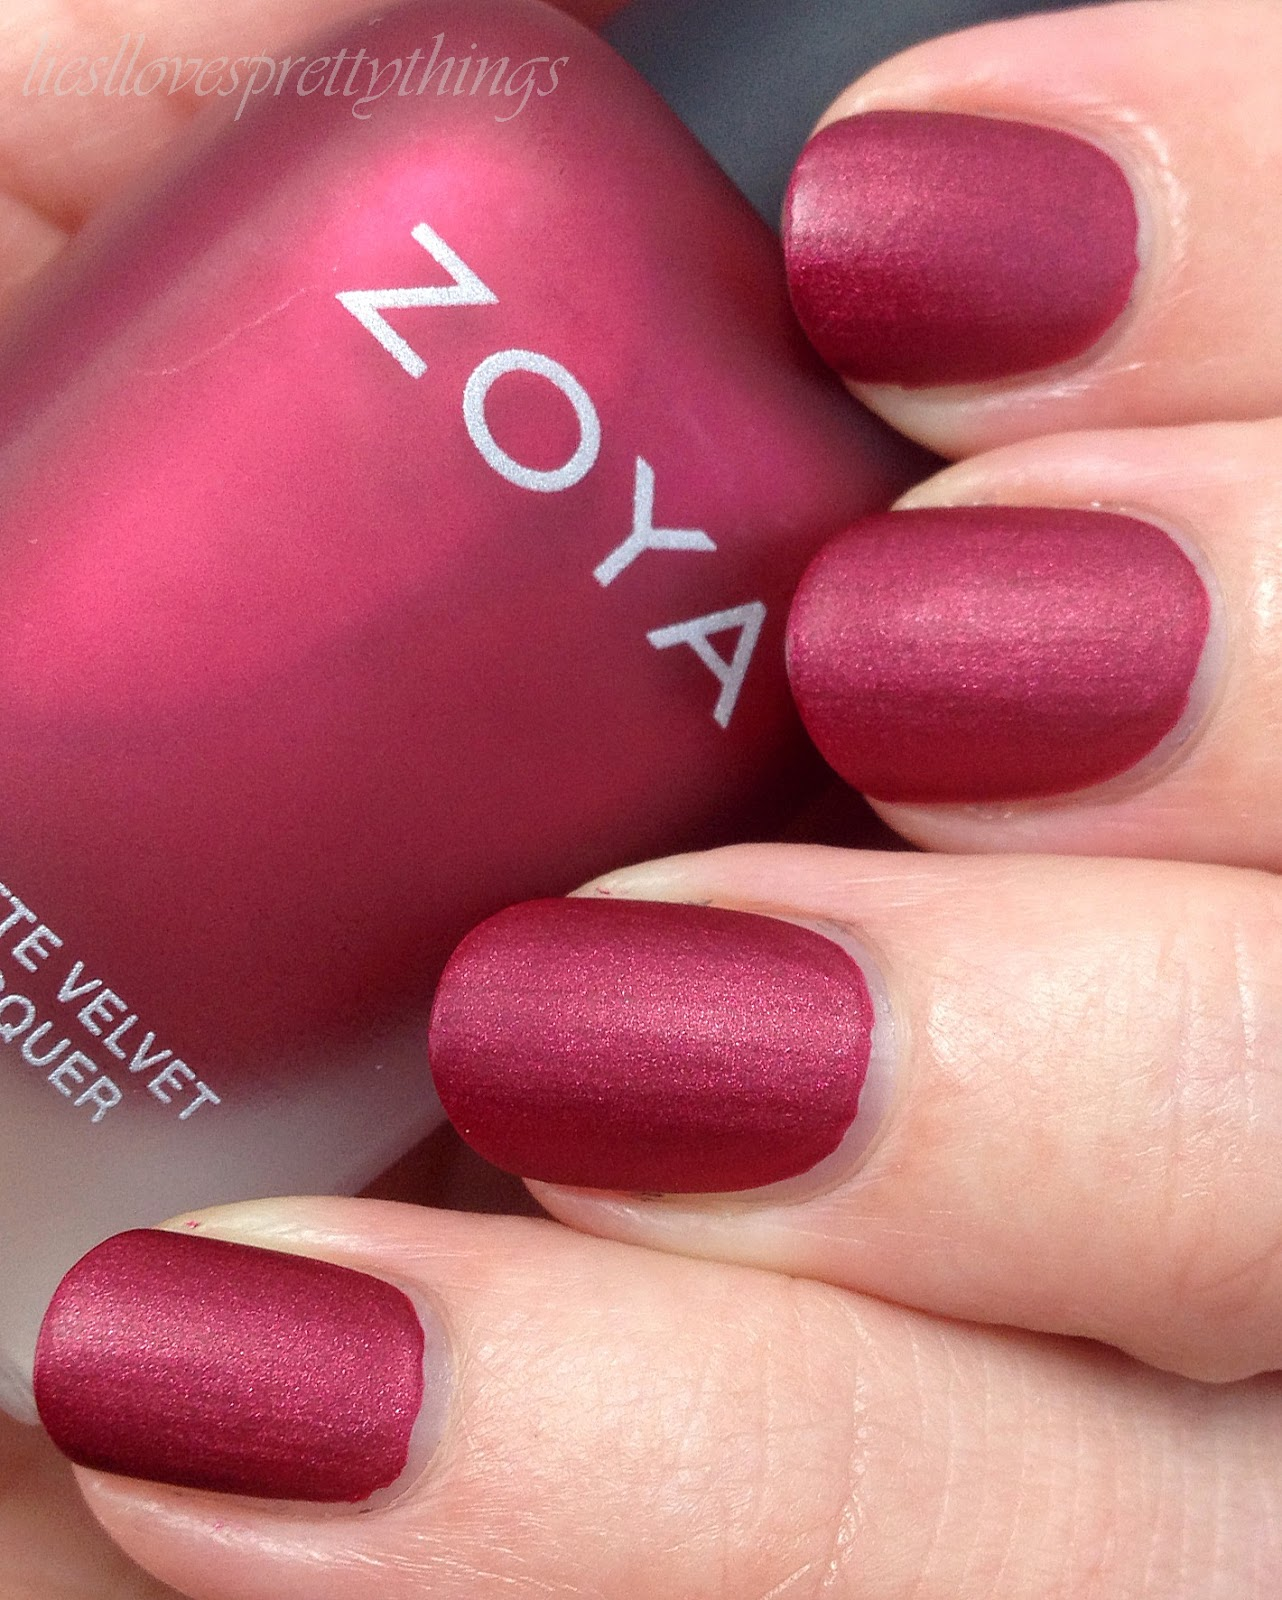 Zoya Posh-- Matte Velvet Collection swatch and review